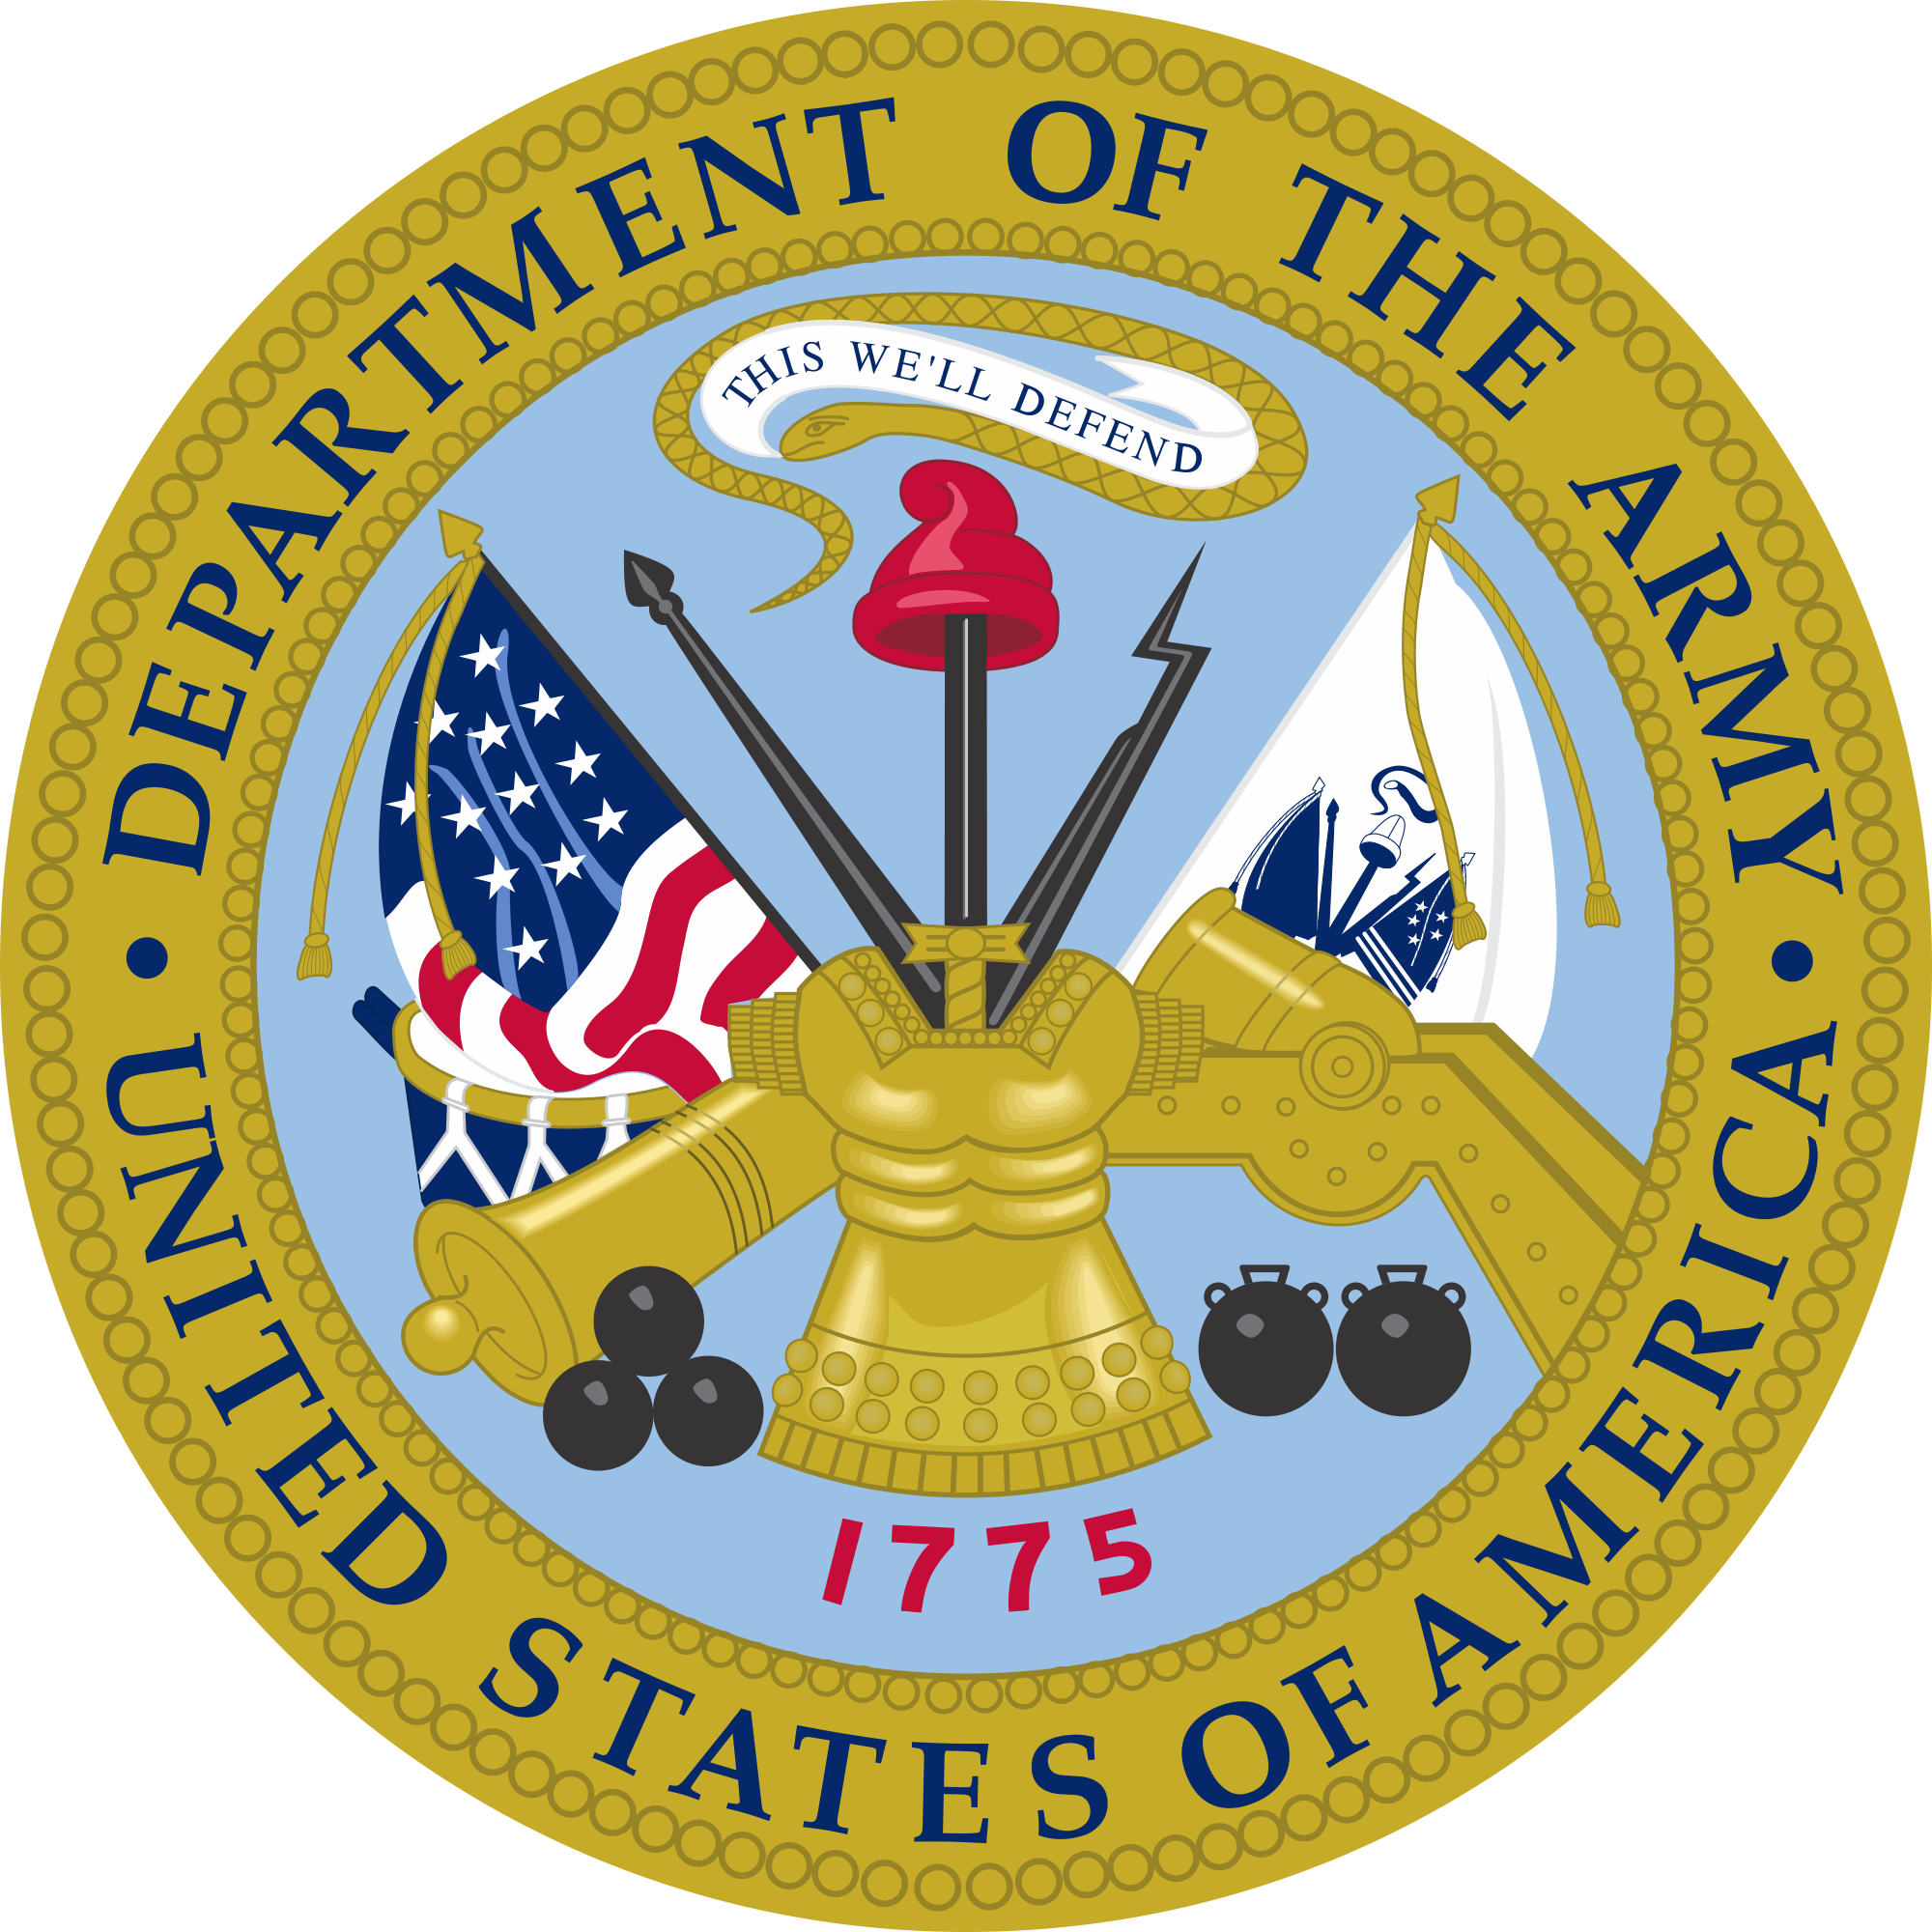 United_States_Army_logo.png